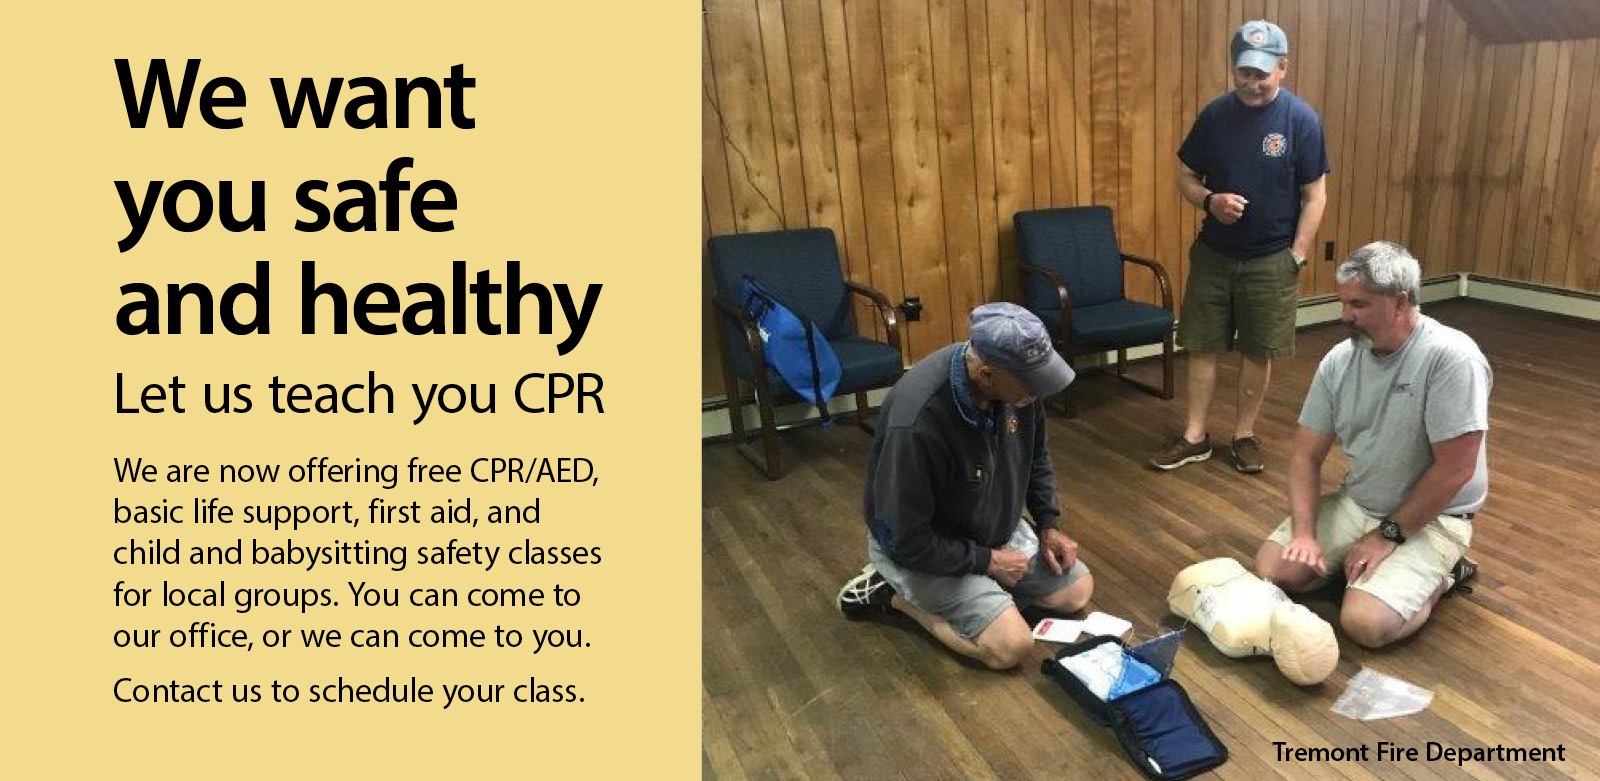 let us teach you cpr